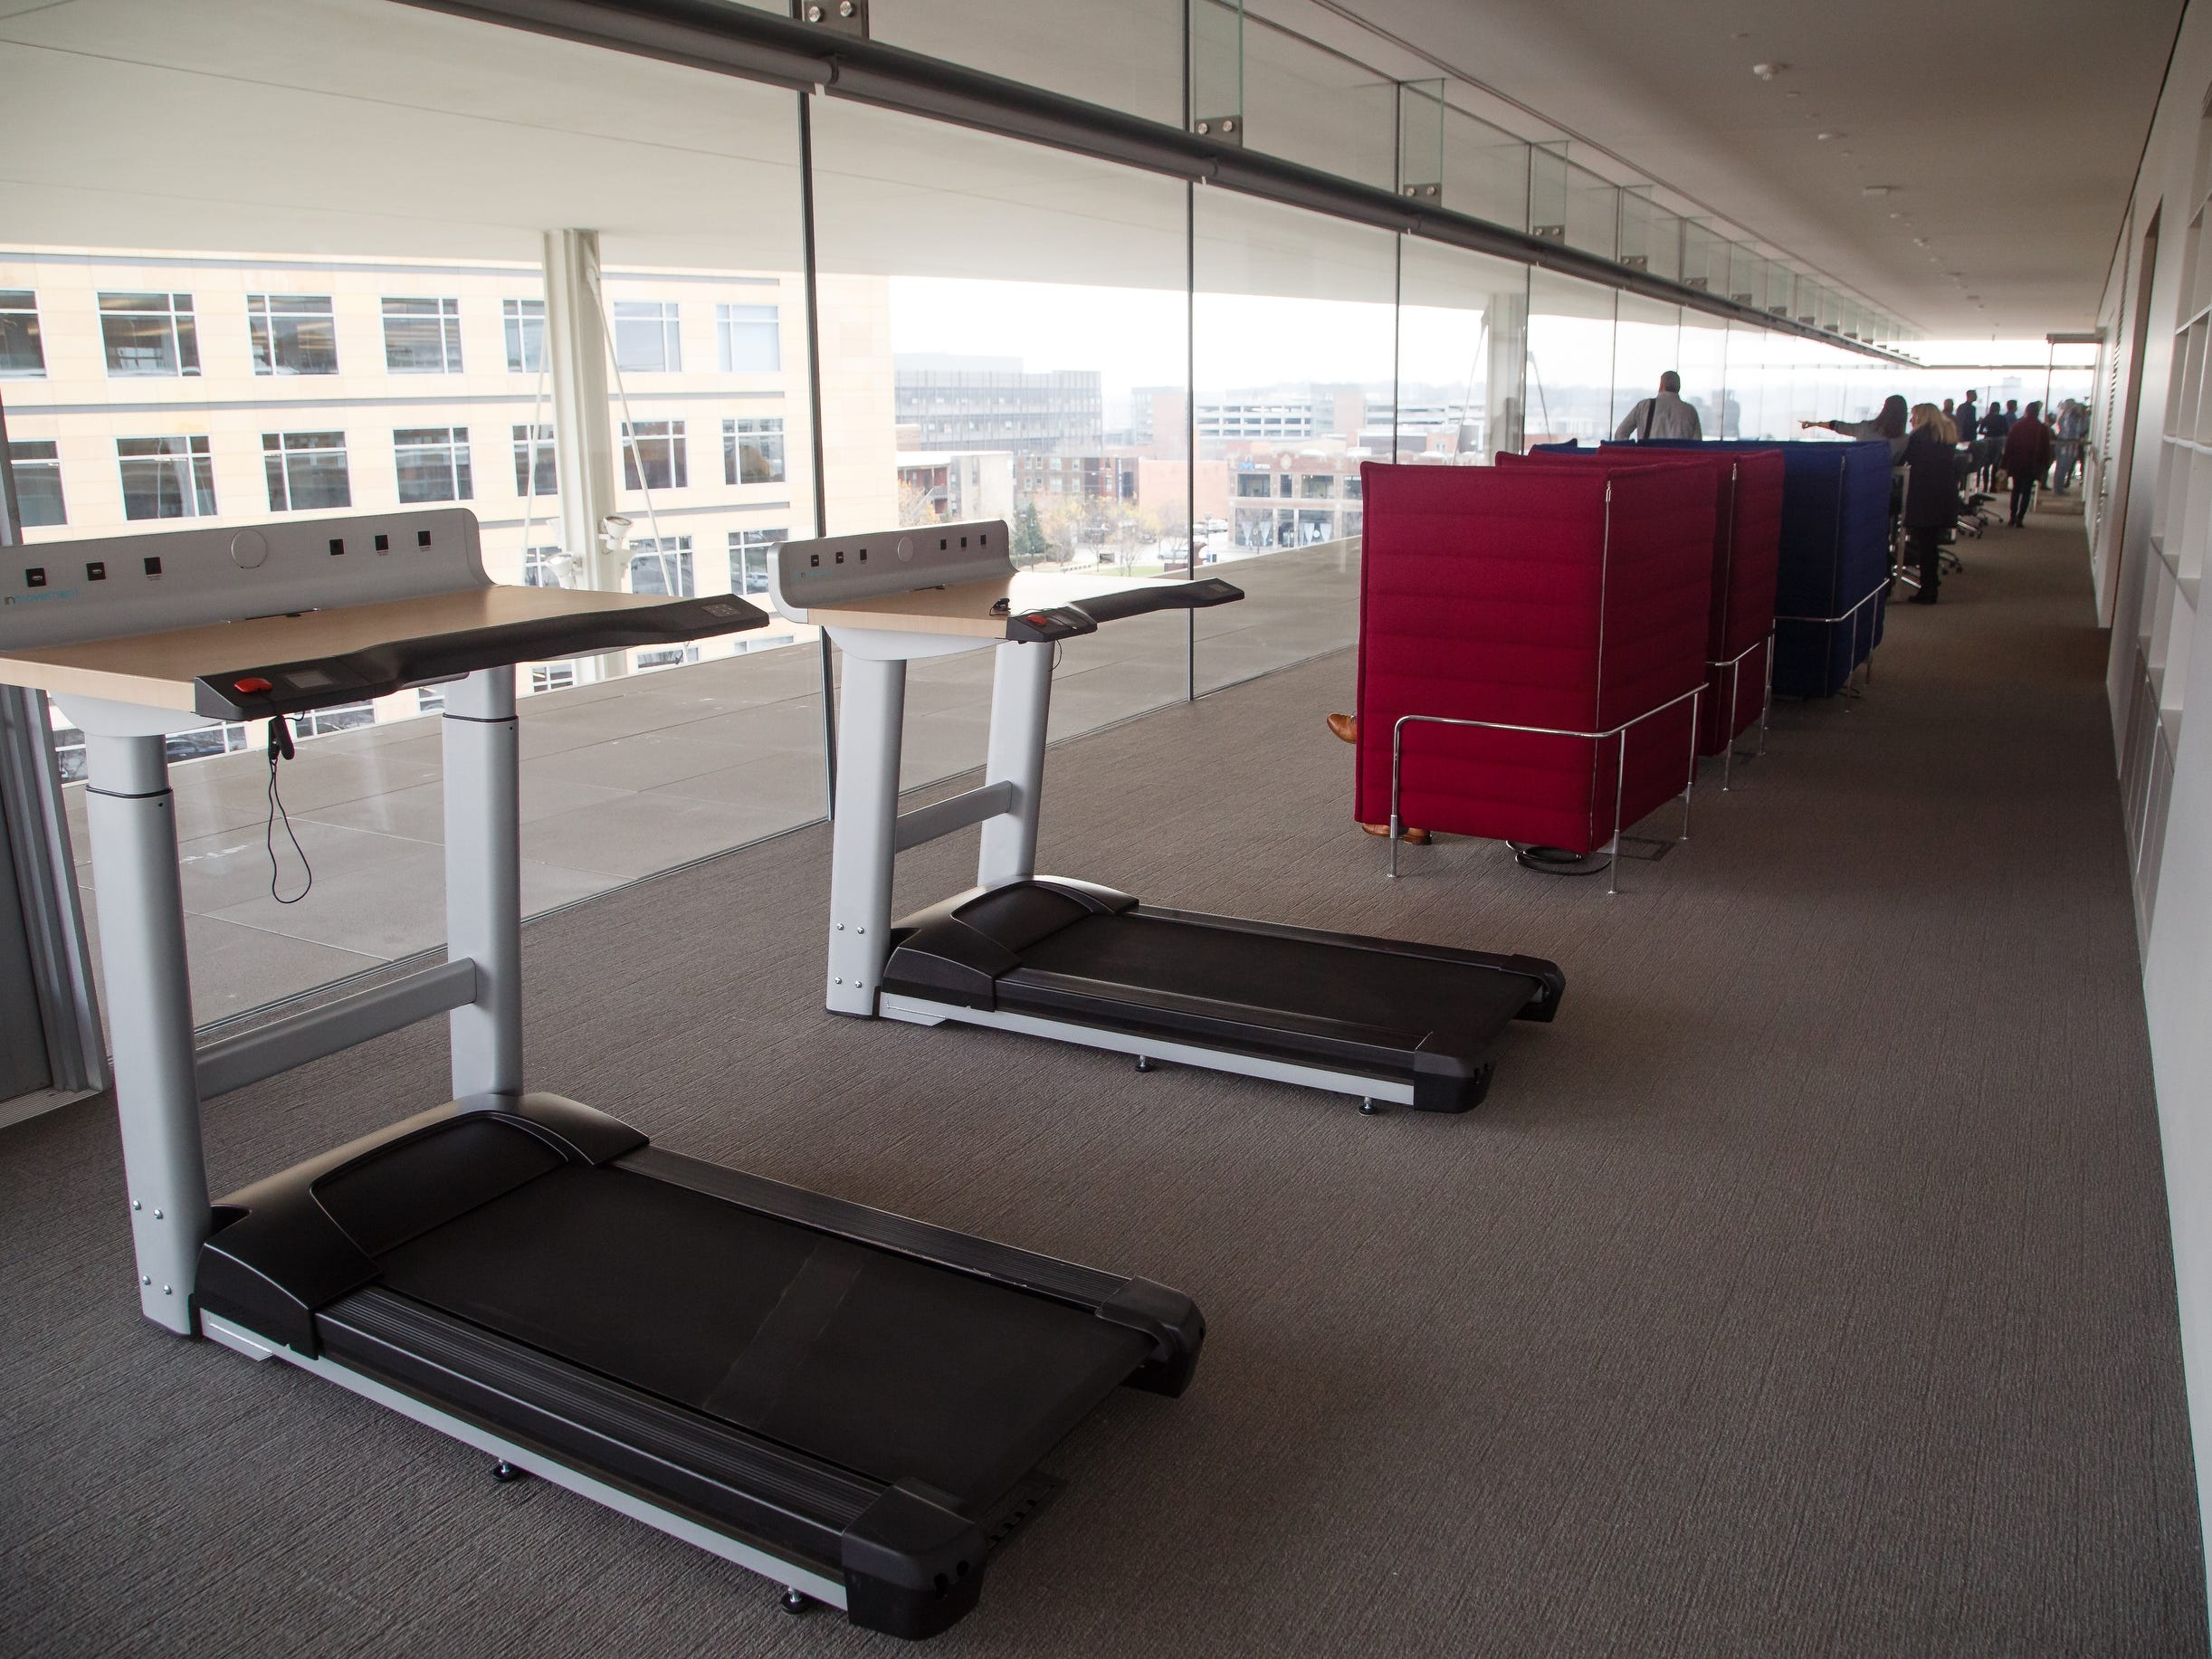 Treadmill desks are a feature of the the new Krause Gateway Center downtown on Friday, Nov. 9, 2018, in Des Moines.